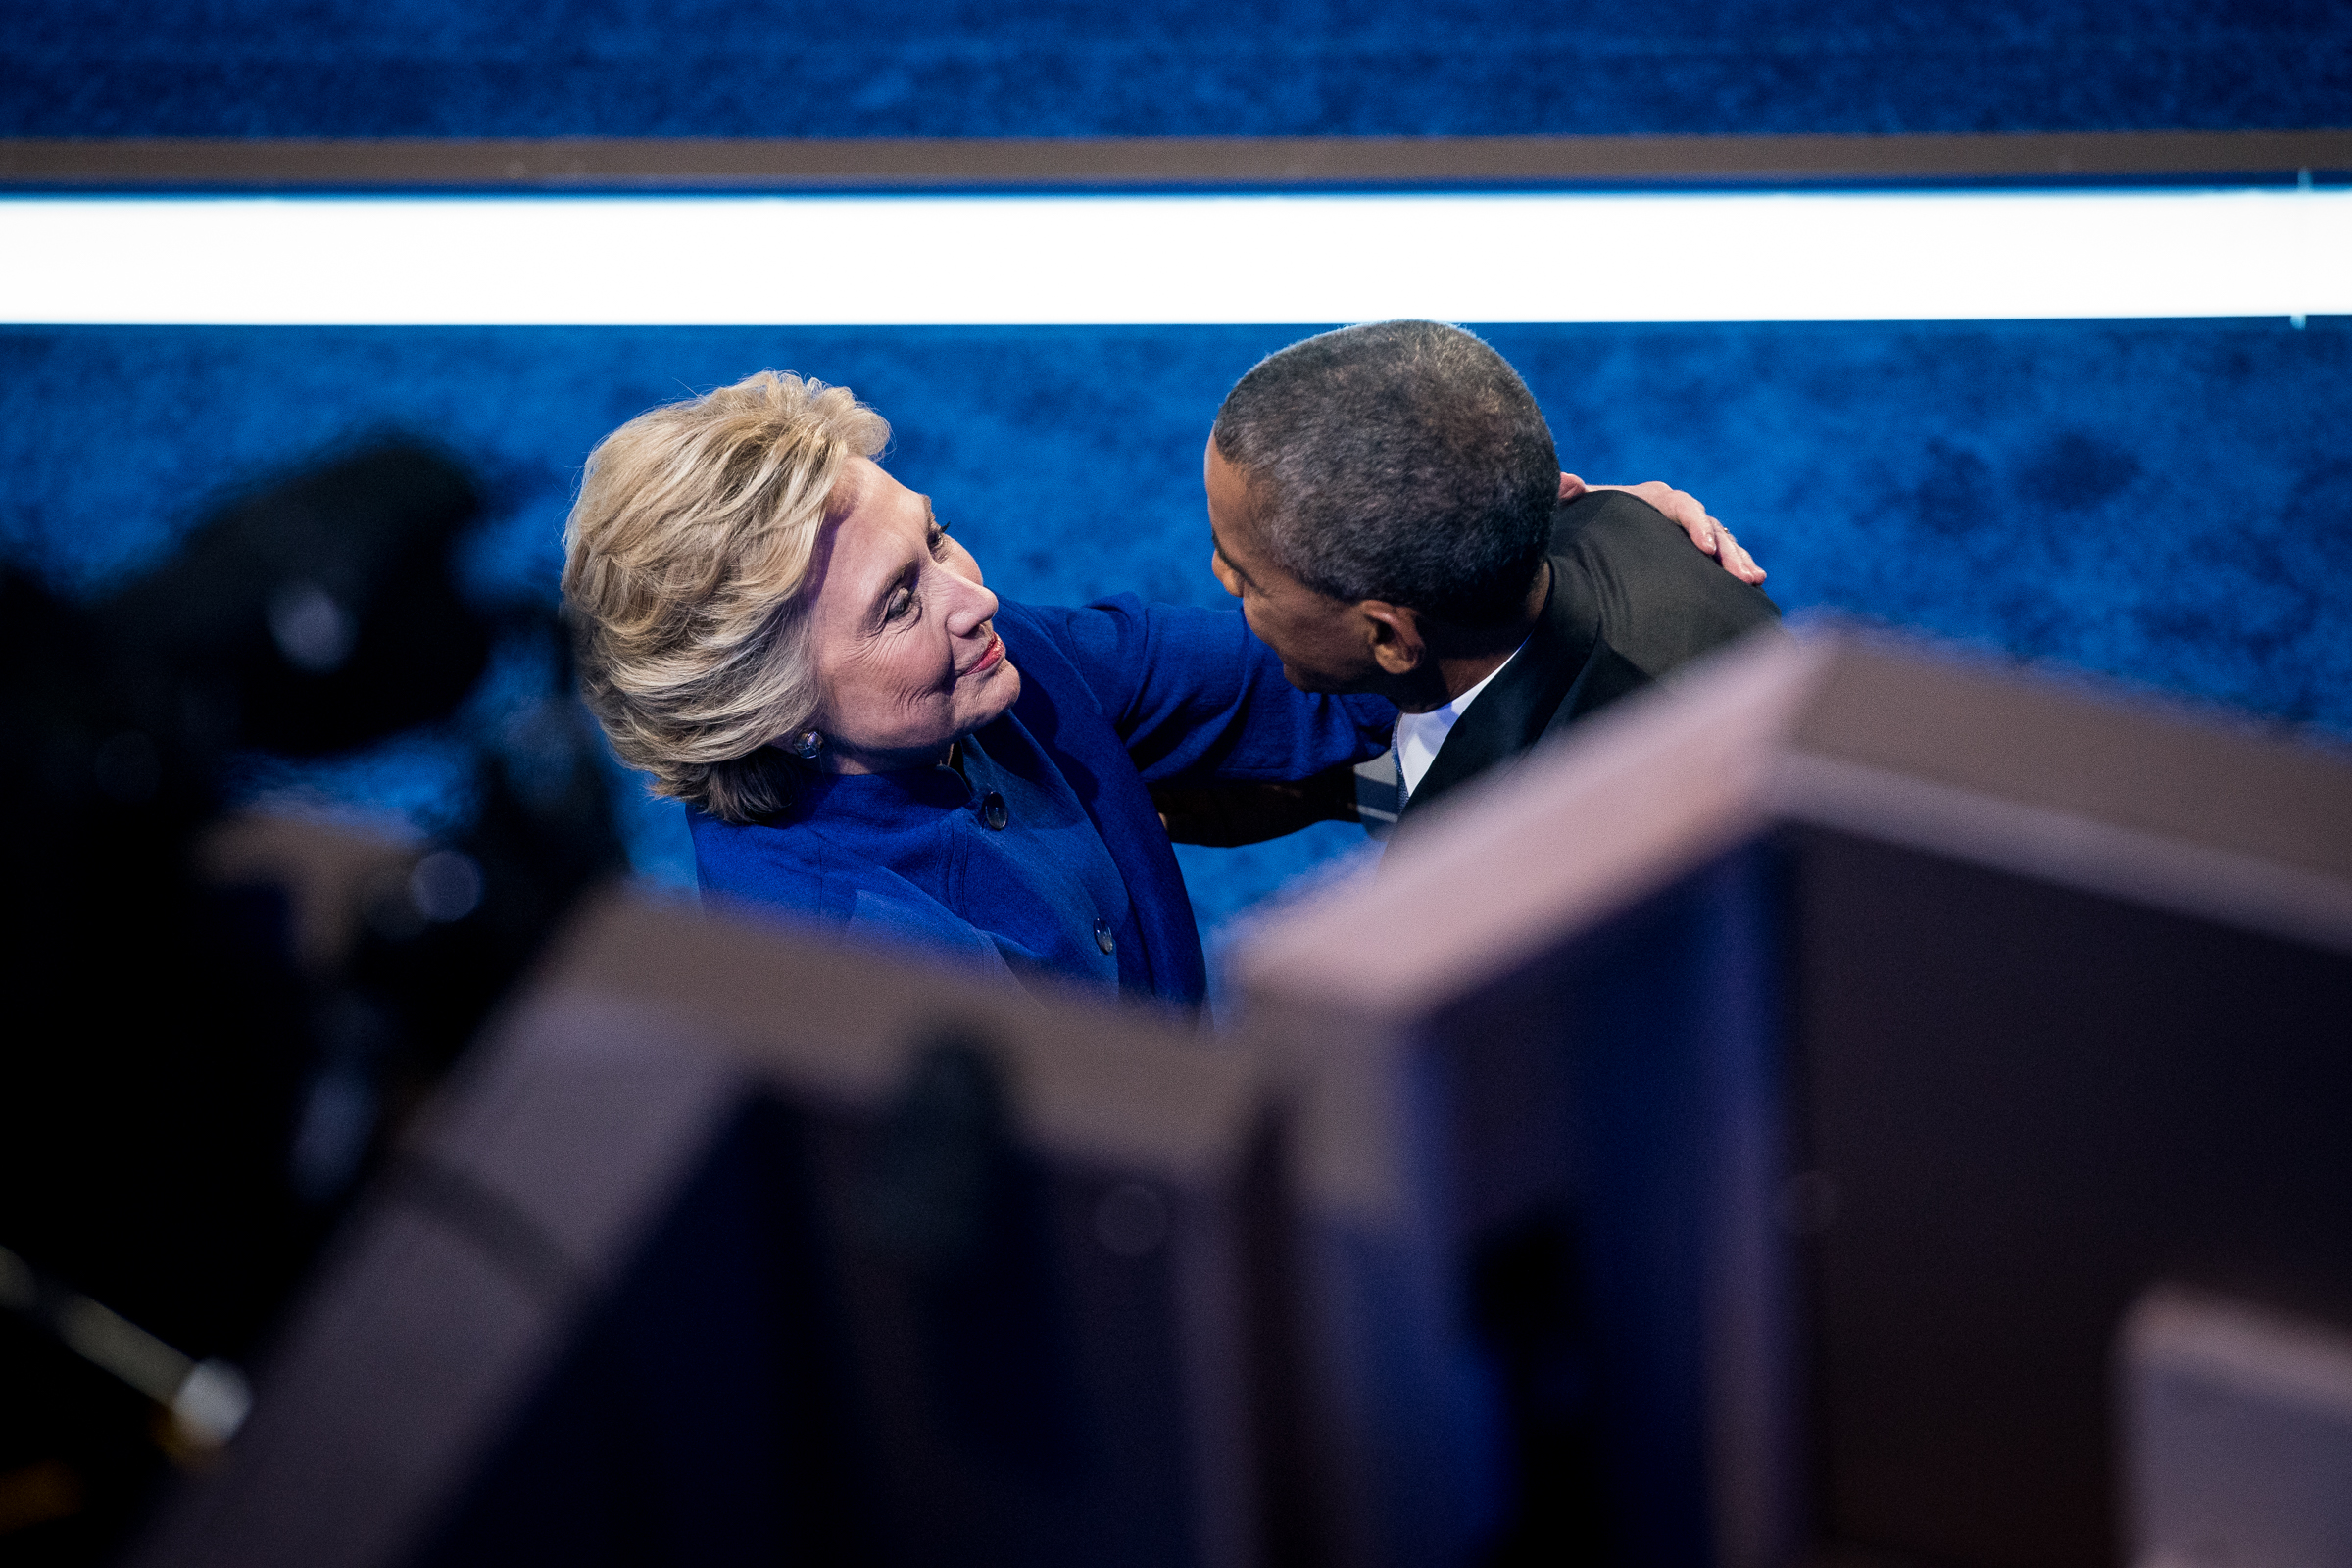 Democratic presidential nominee Hillary Clinton embraces President Barack Obama after his speech during the Democratic National Convention inside the Wells Fargo Center in Philadelphia on Wednesday July 27, 2016. (Michael Ares /Philadelphia Inquirer)